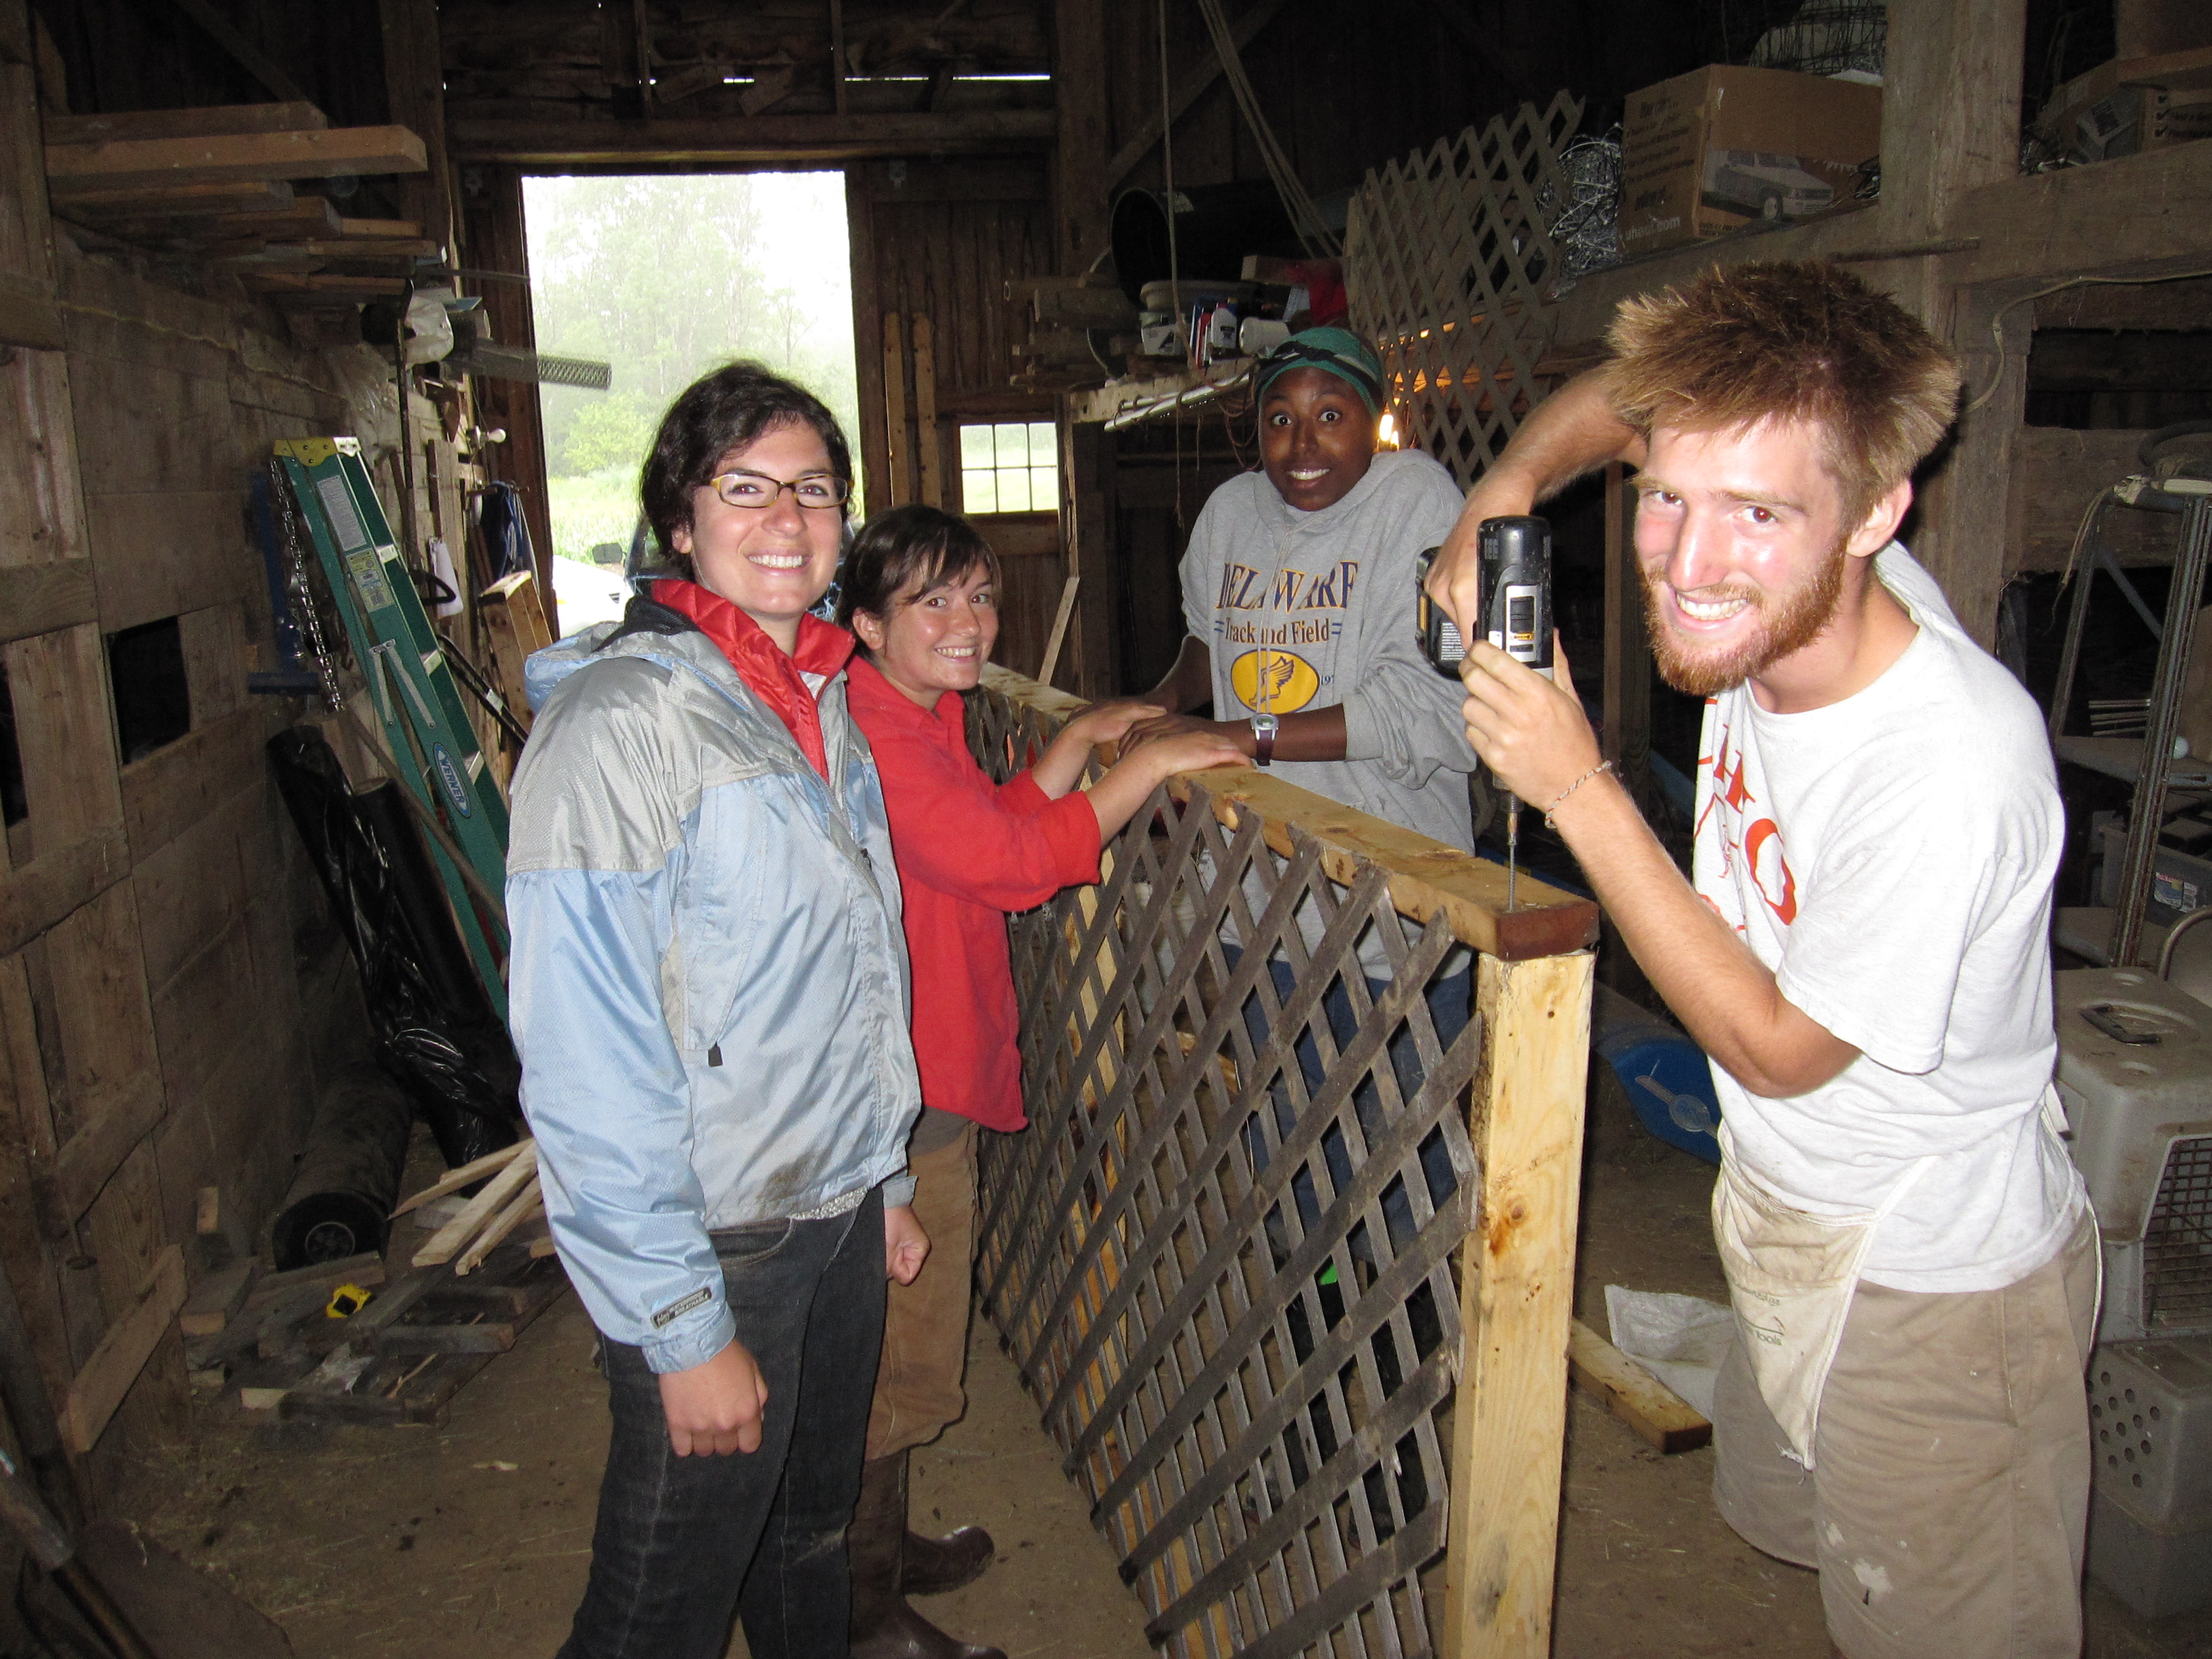 Rachel, Angelica, Minna & Jordan, honing their fine finish carpentry skills by building garlic and onion drying racks in the barn on a rainy Friday morning.